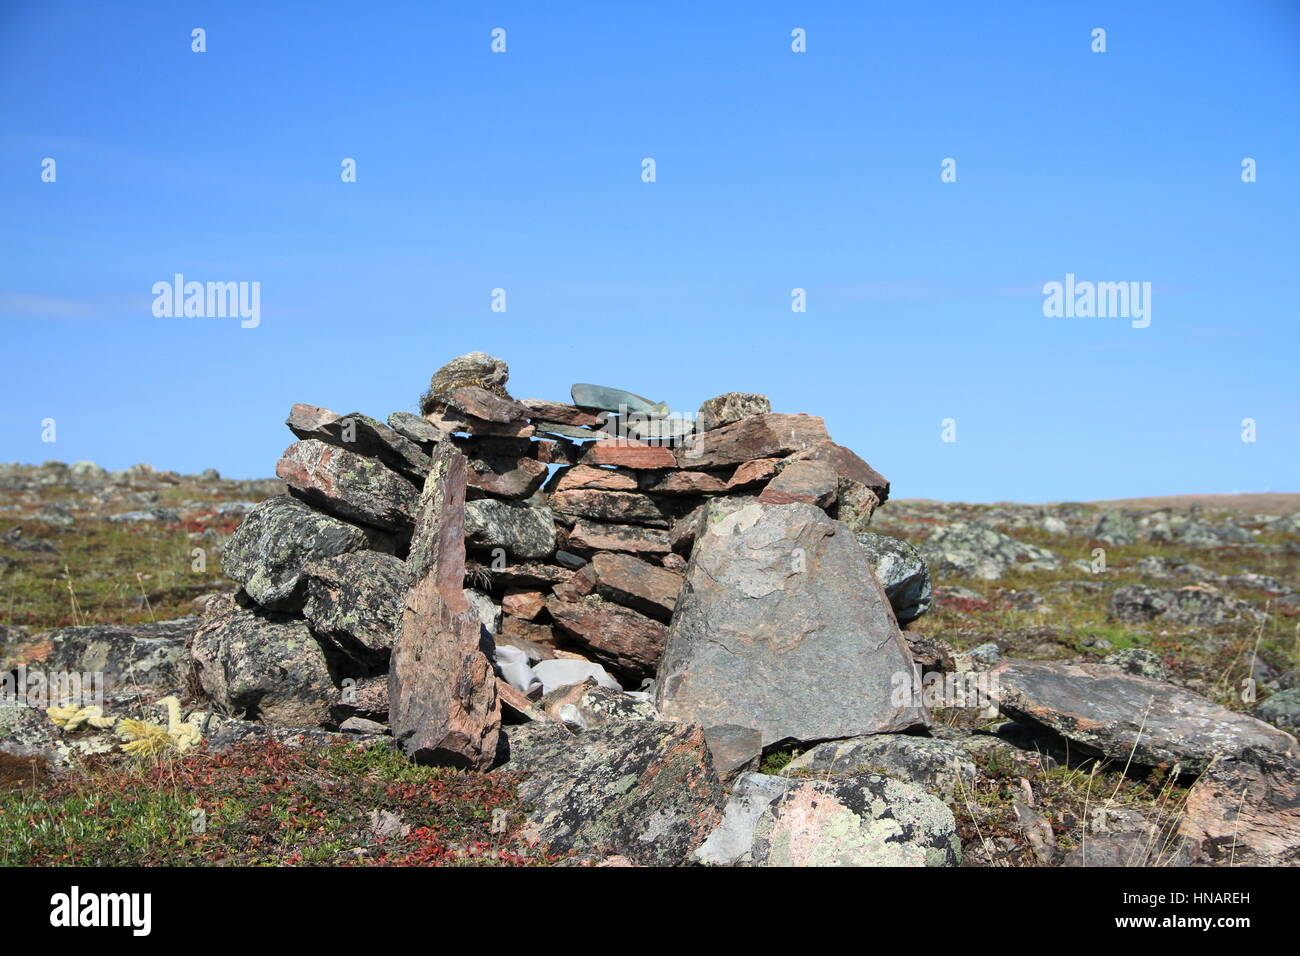 Cairn or meat cache structure near Baker Lake, Nunavut - Stock Image